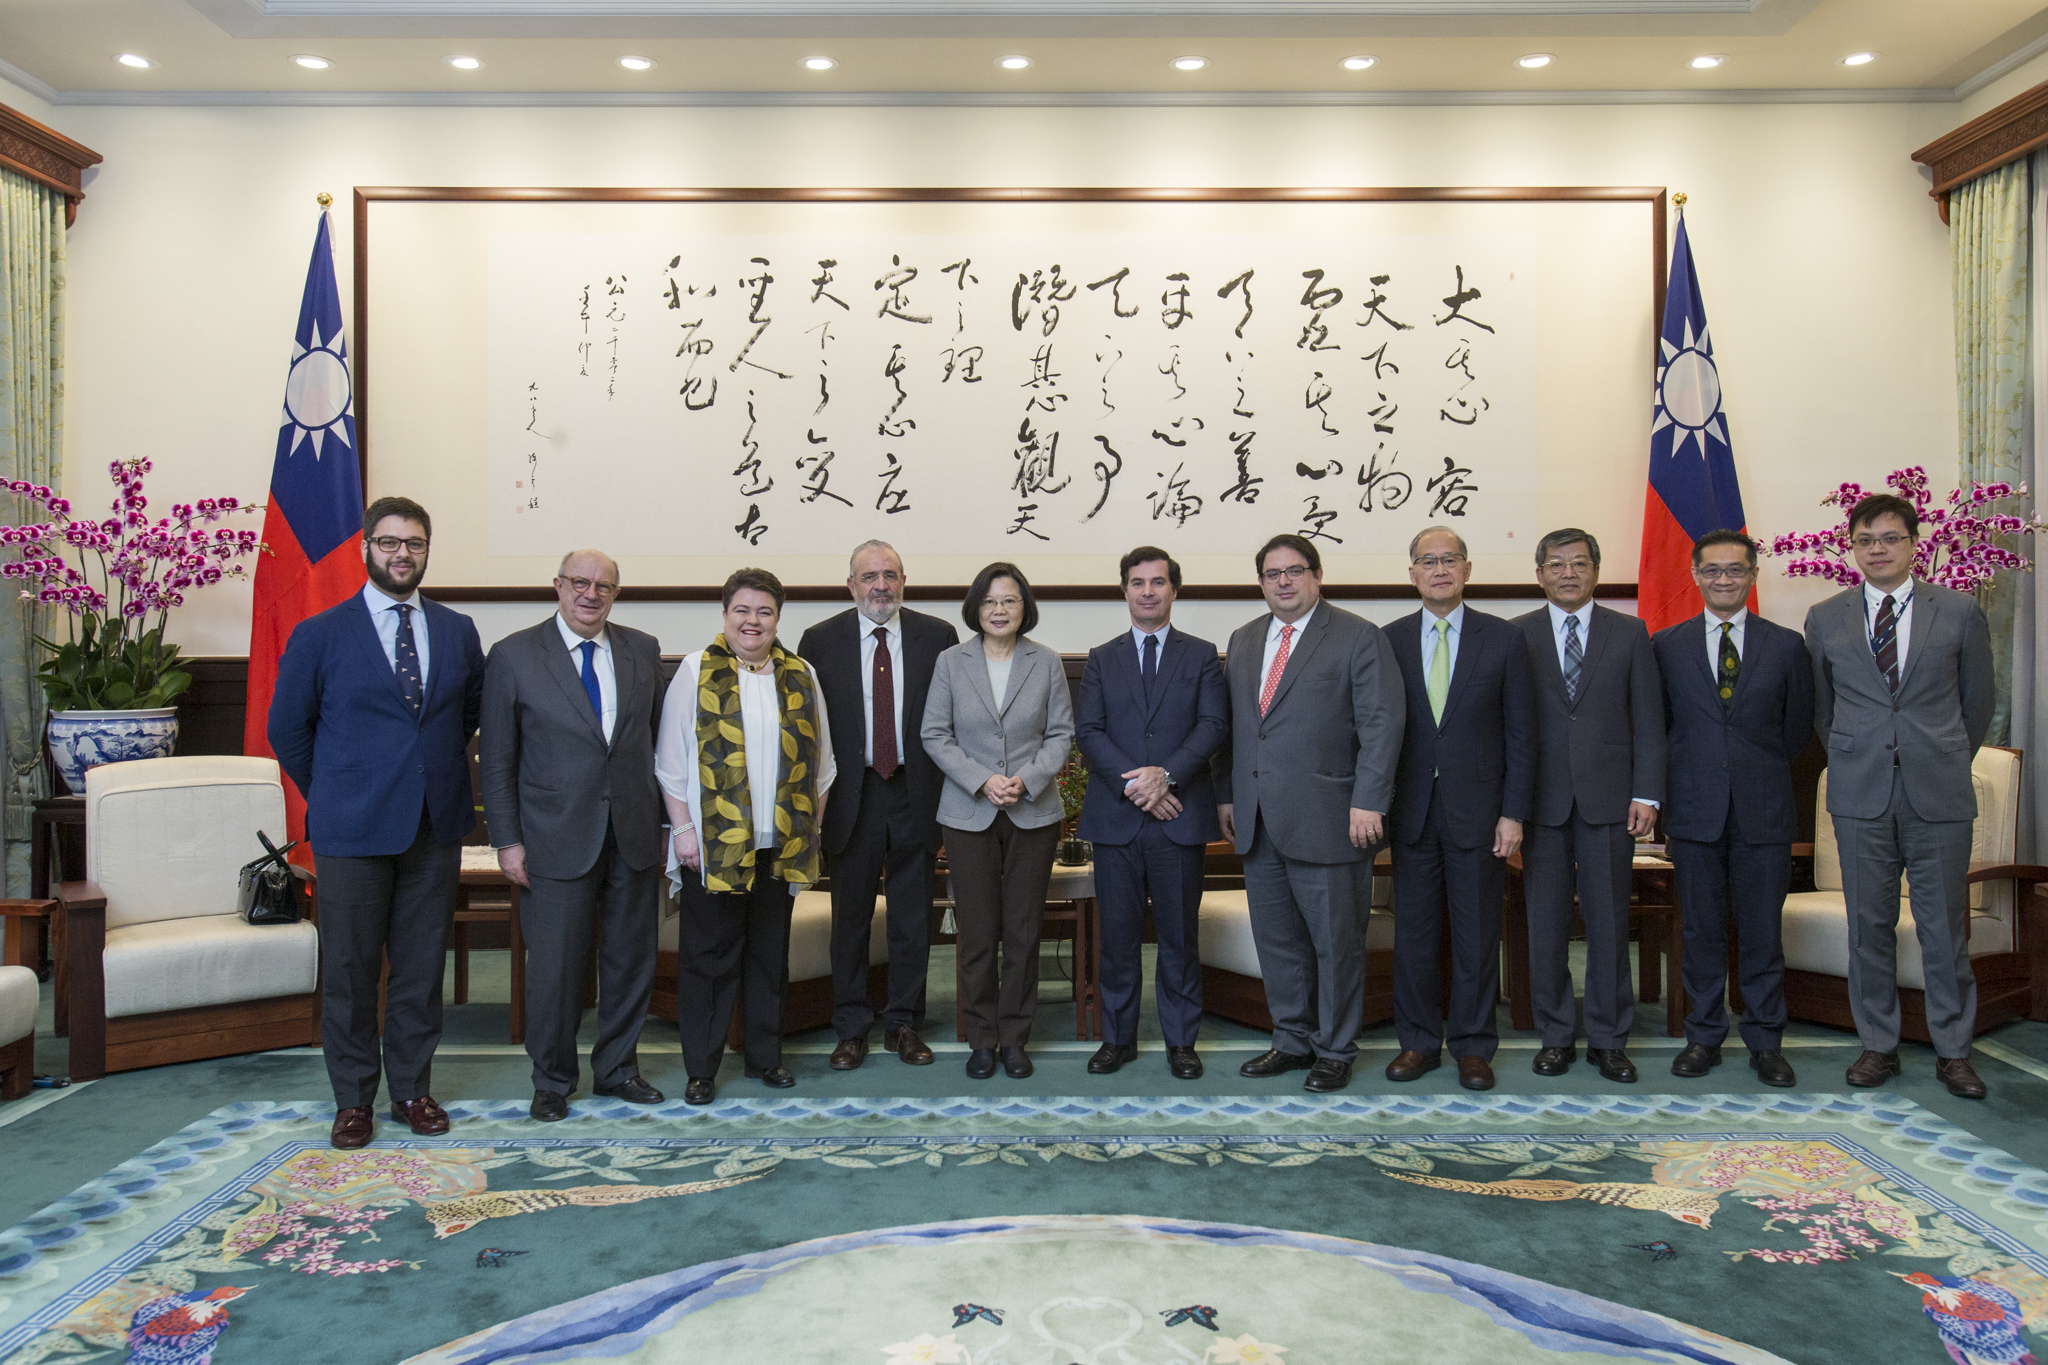 President Tsai poses for a photo with a delegation from the European Parliament.